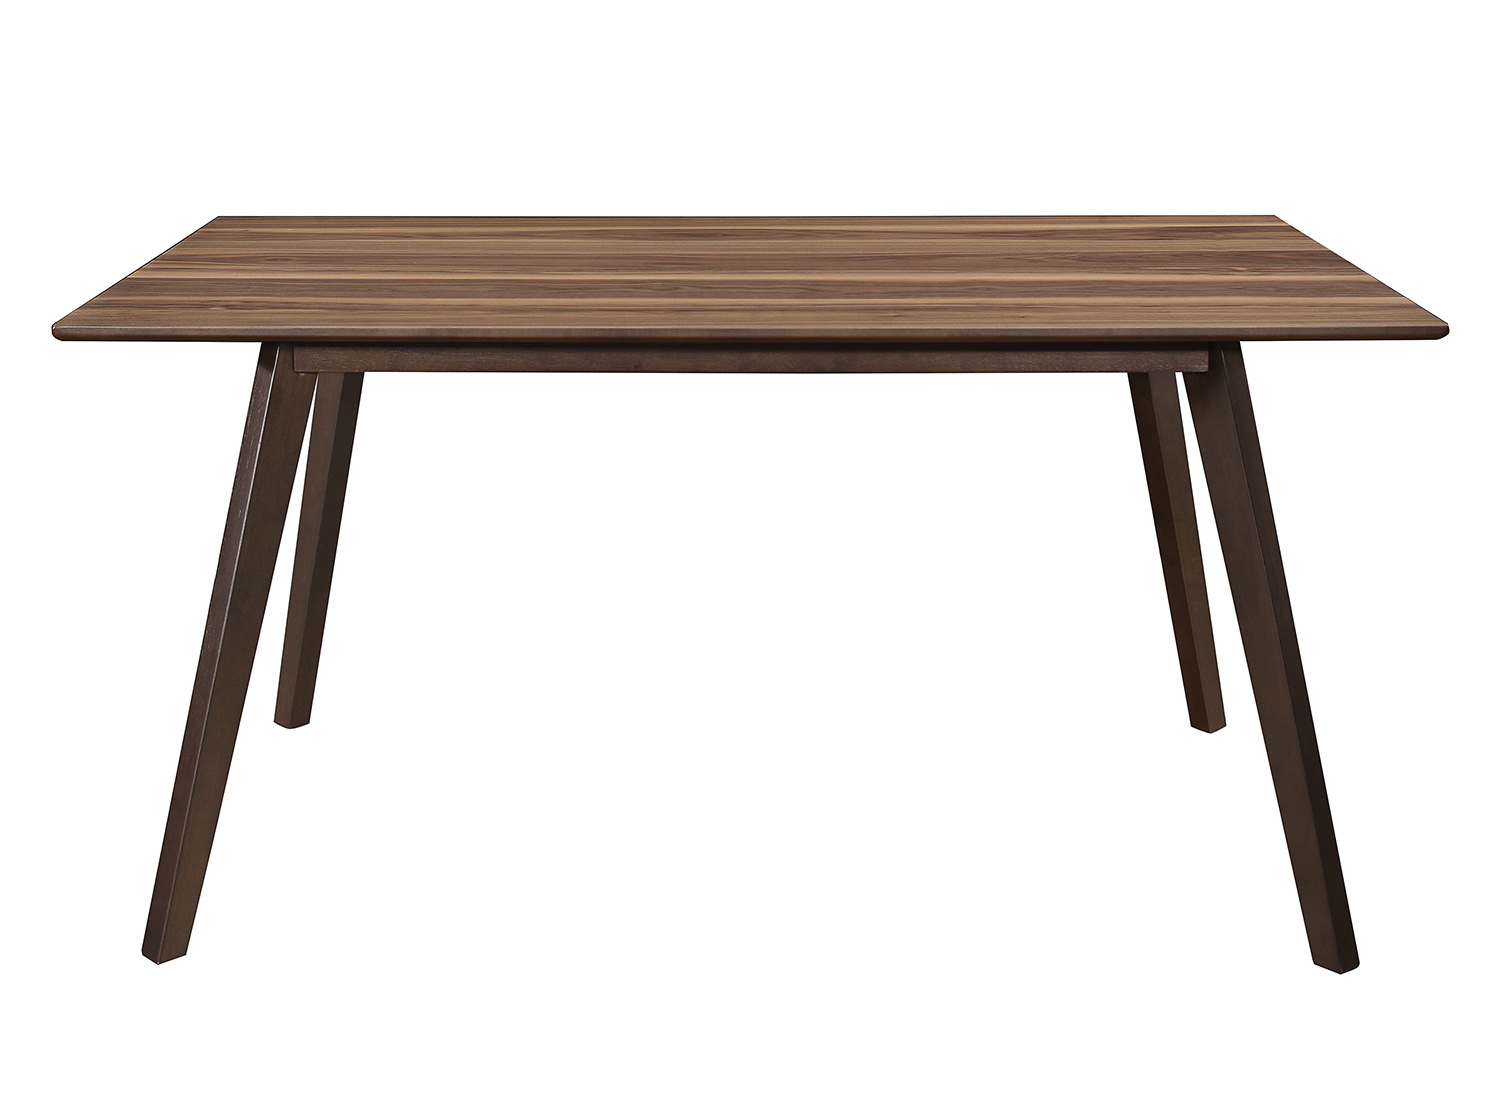 Homelegance Steer Dining Table - Walnut 2-Tone